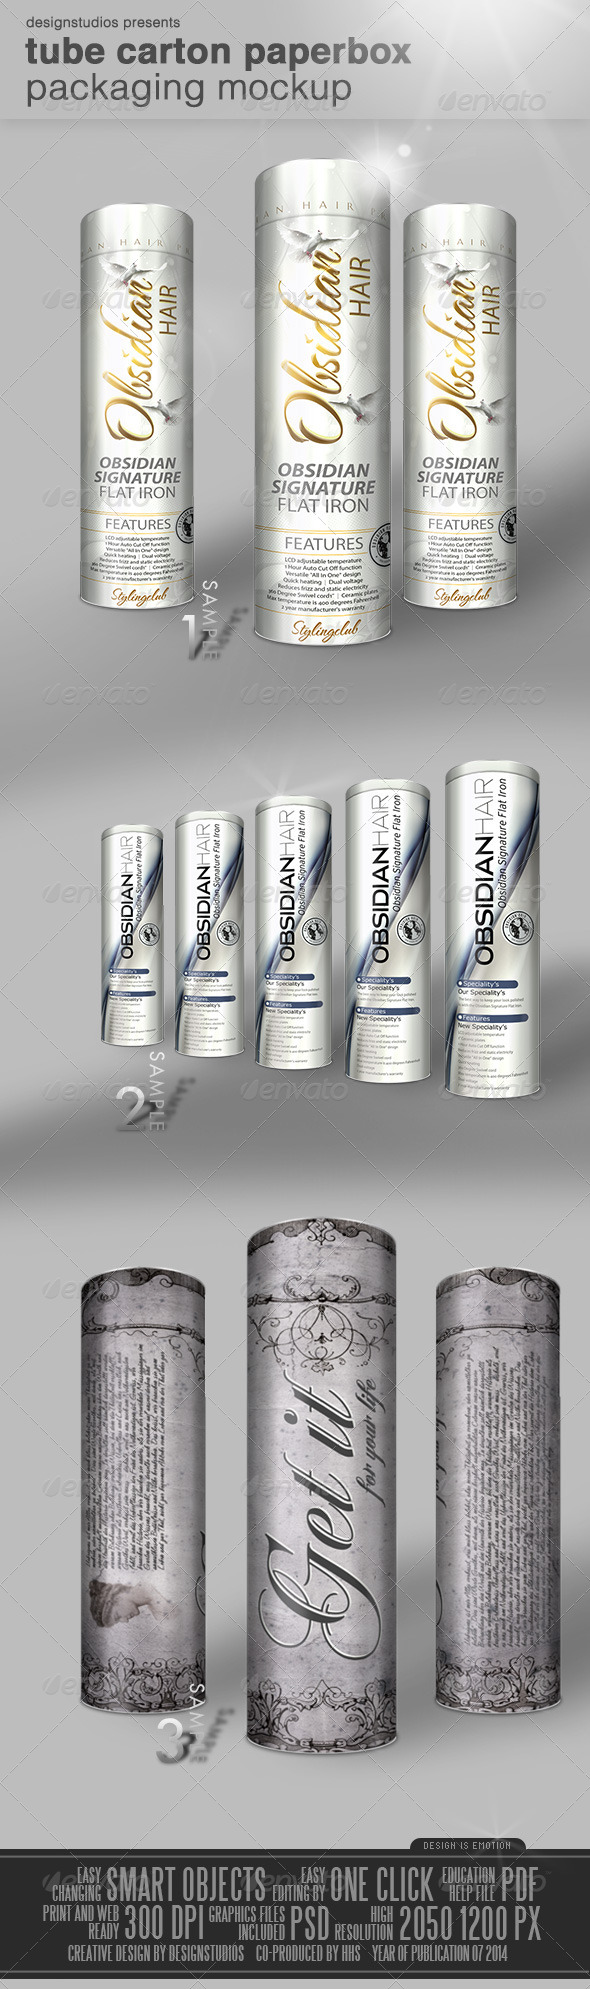 GraphicRiver Tube Carton Paperbox Packaging Mock-Up 8231918